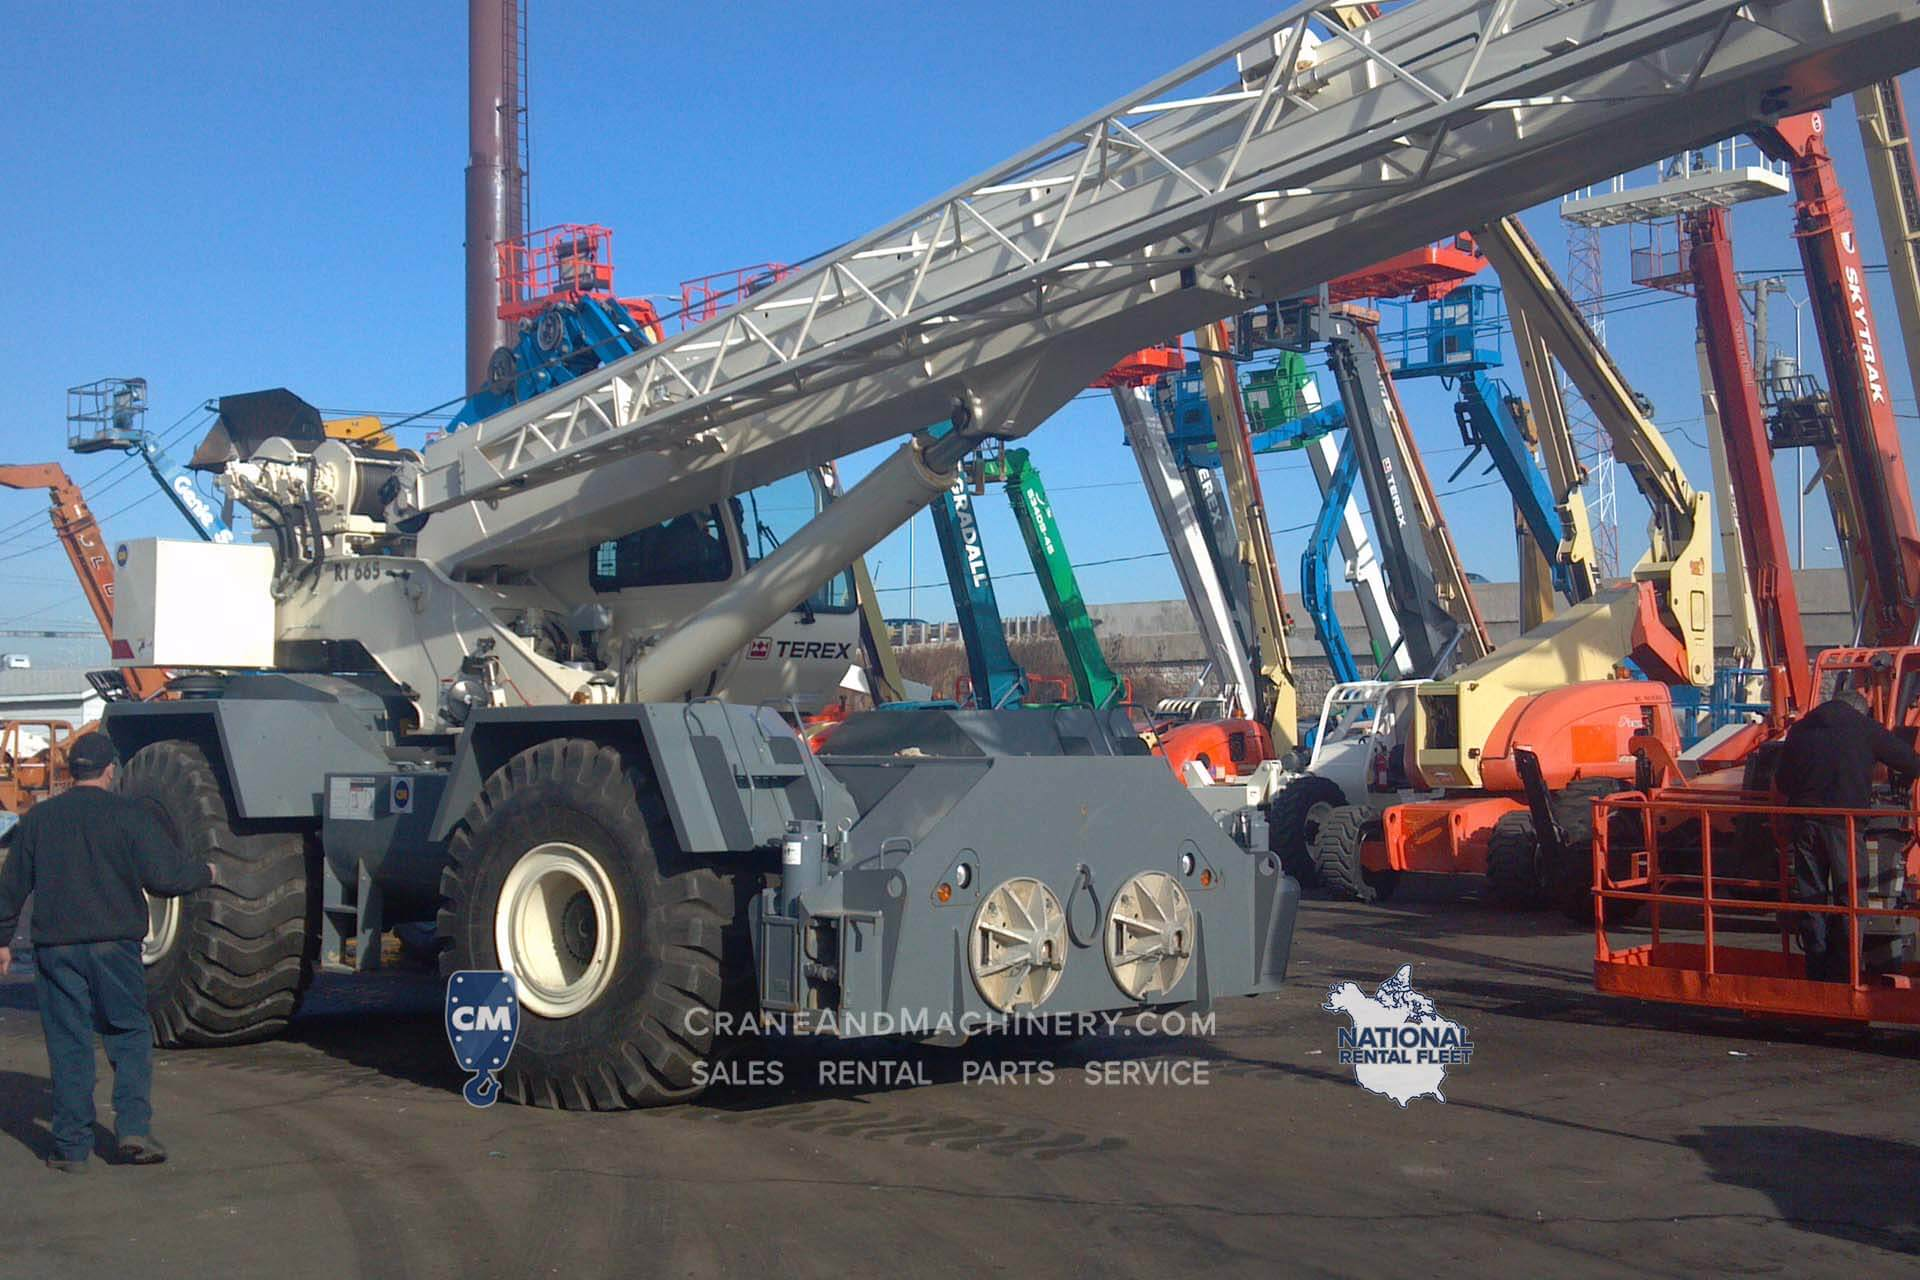 Terex RT665 Terex RT Crane rentals for Chicago, and North America. Long term and short term rentals available. Purchase new or used Terex RT cranes at Crane & Machinery